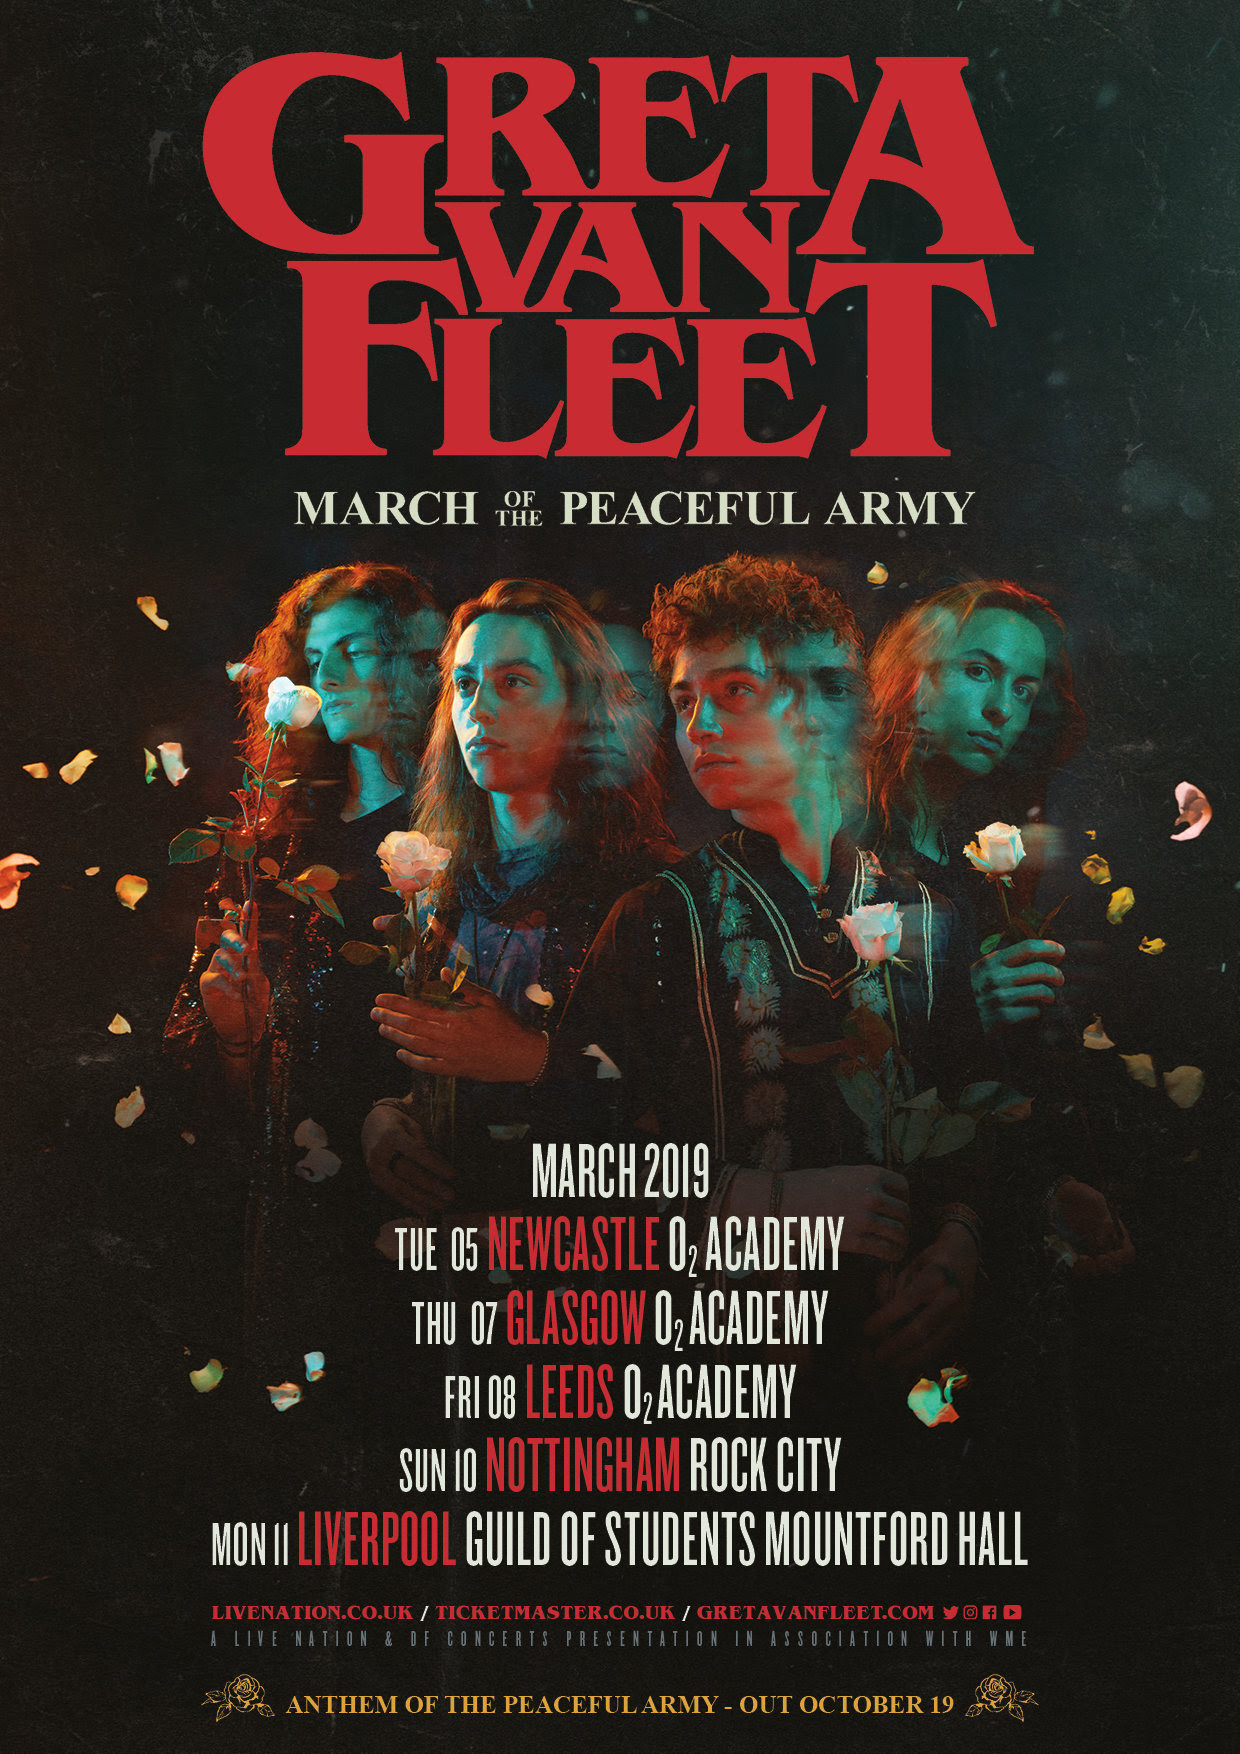 Greta Van fleet, Tour, TotalNtertainment, Leeds, Music